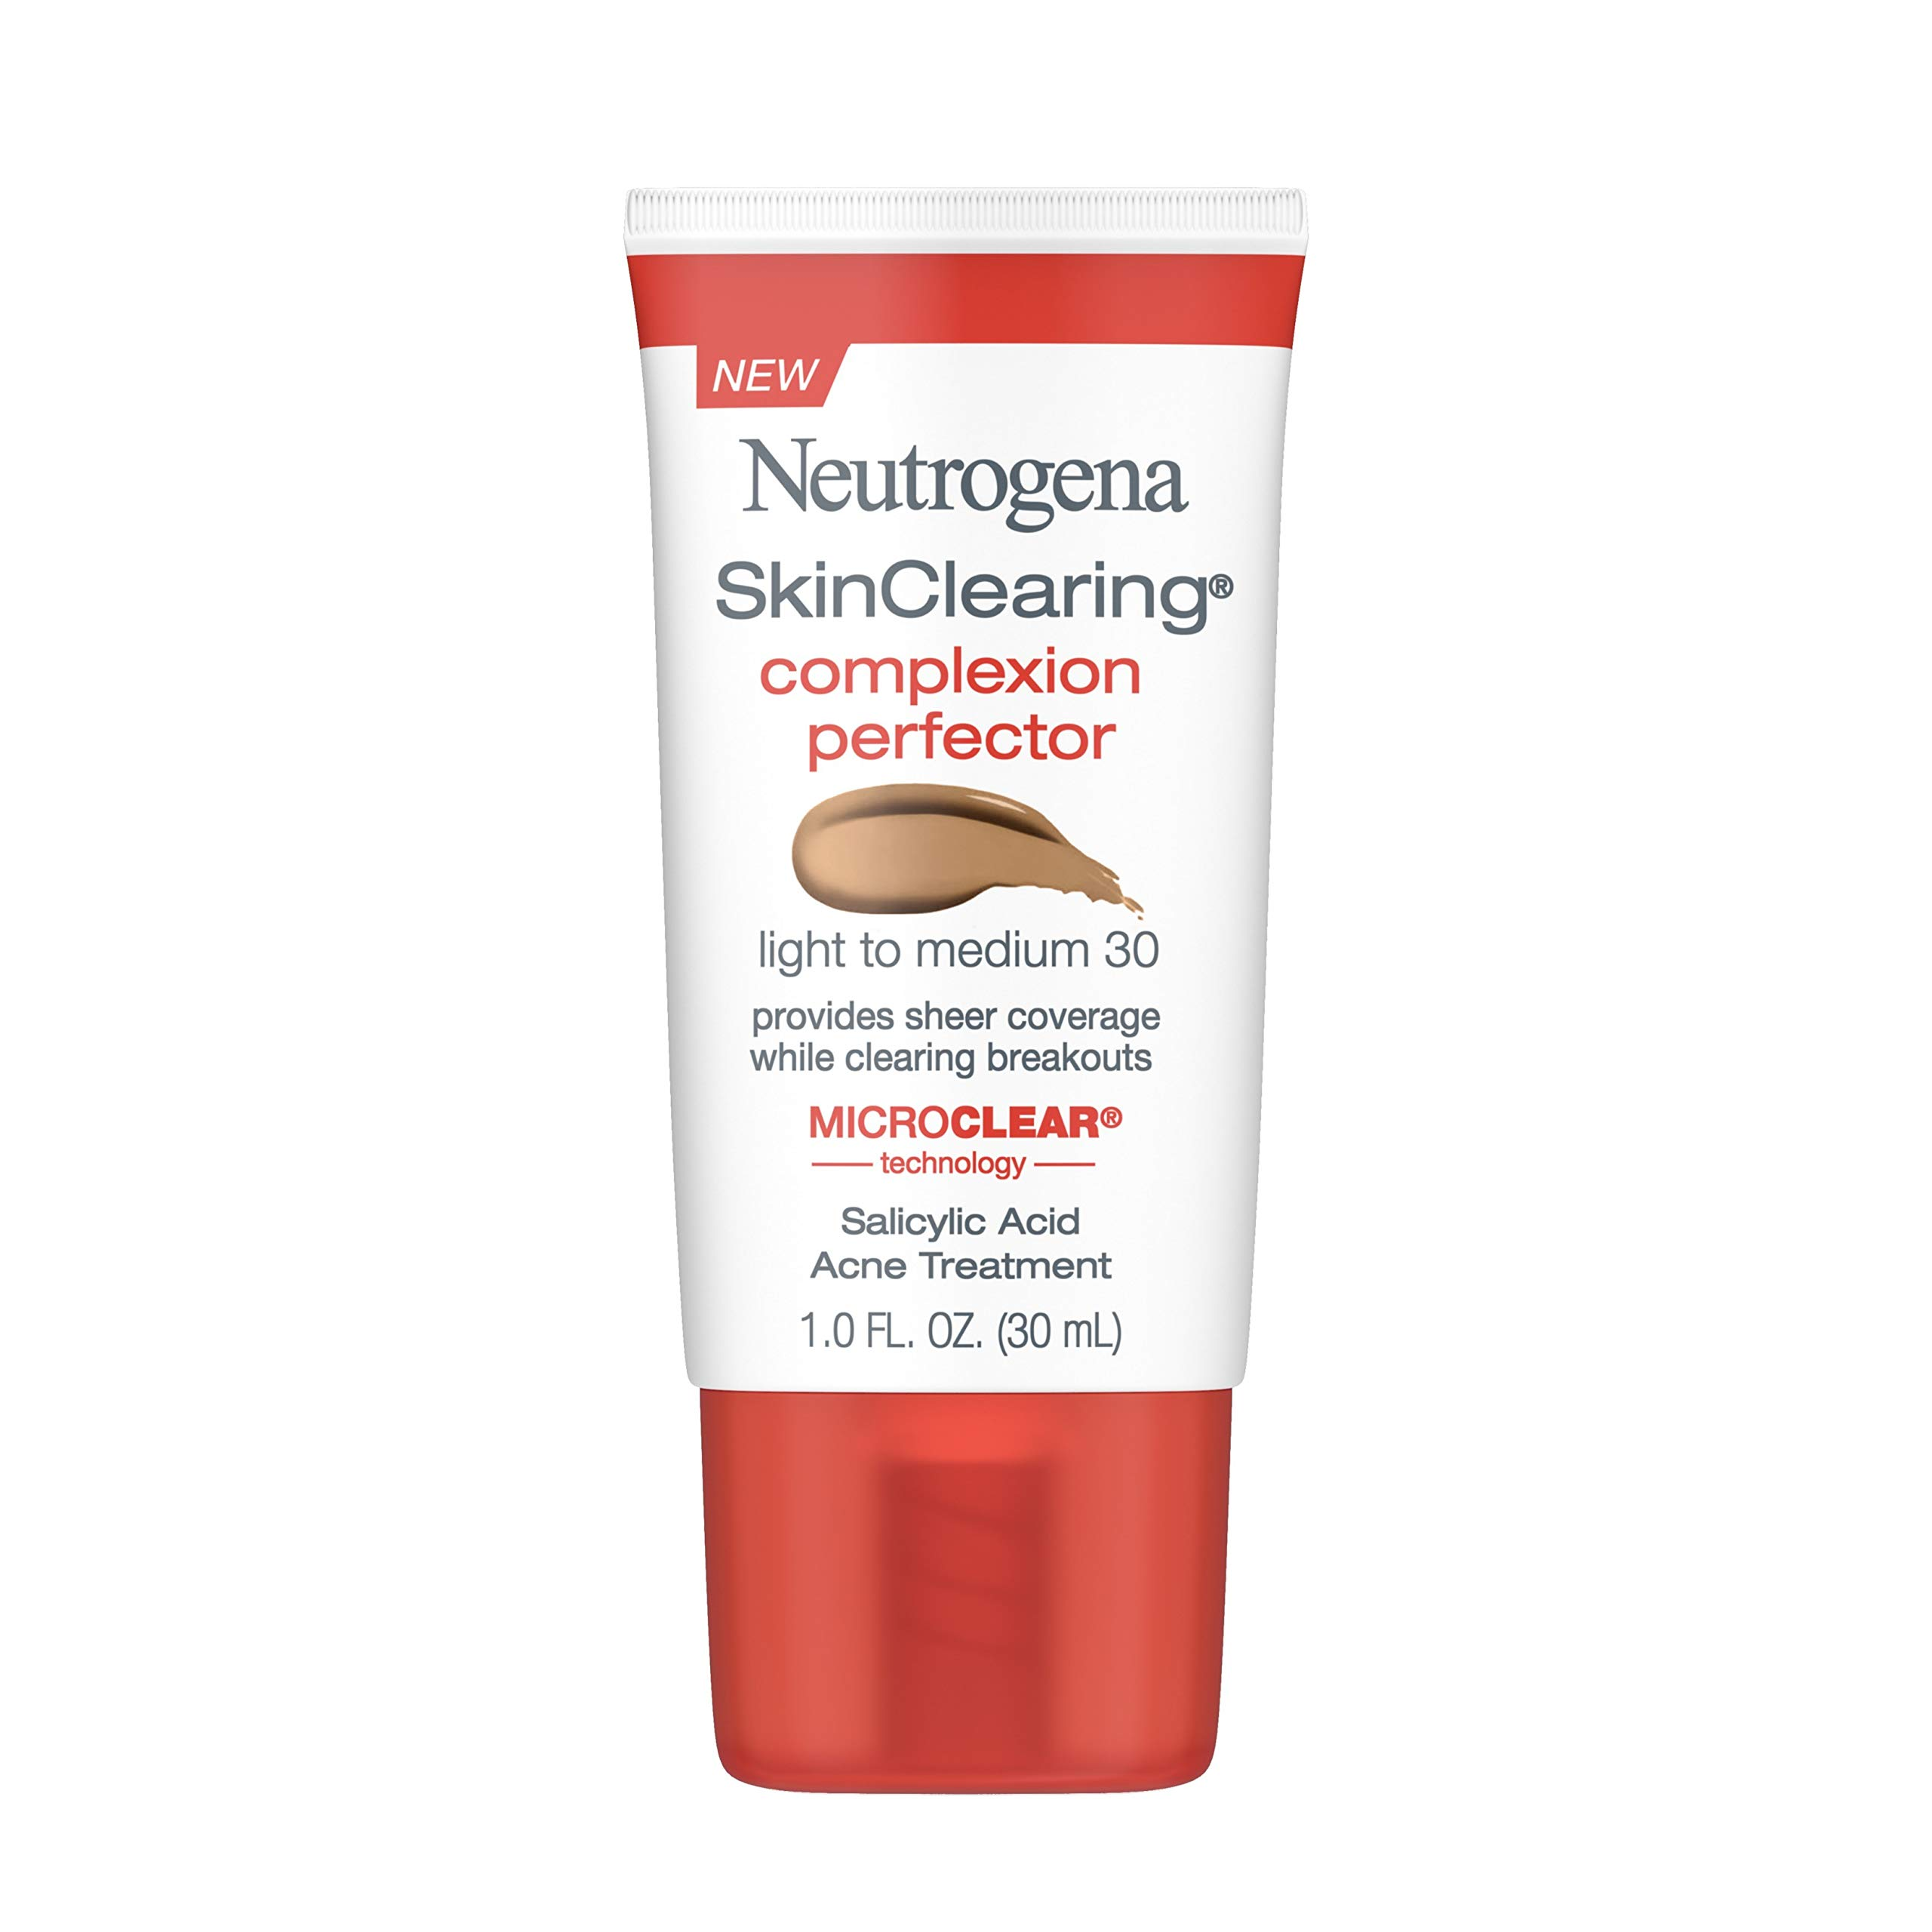 Neutrogena SkinClearing Complexion Perfector Sheer Tinted Facial Moisturizer